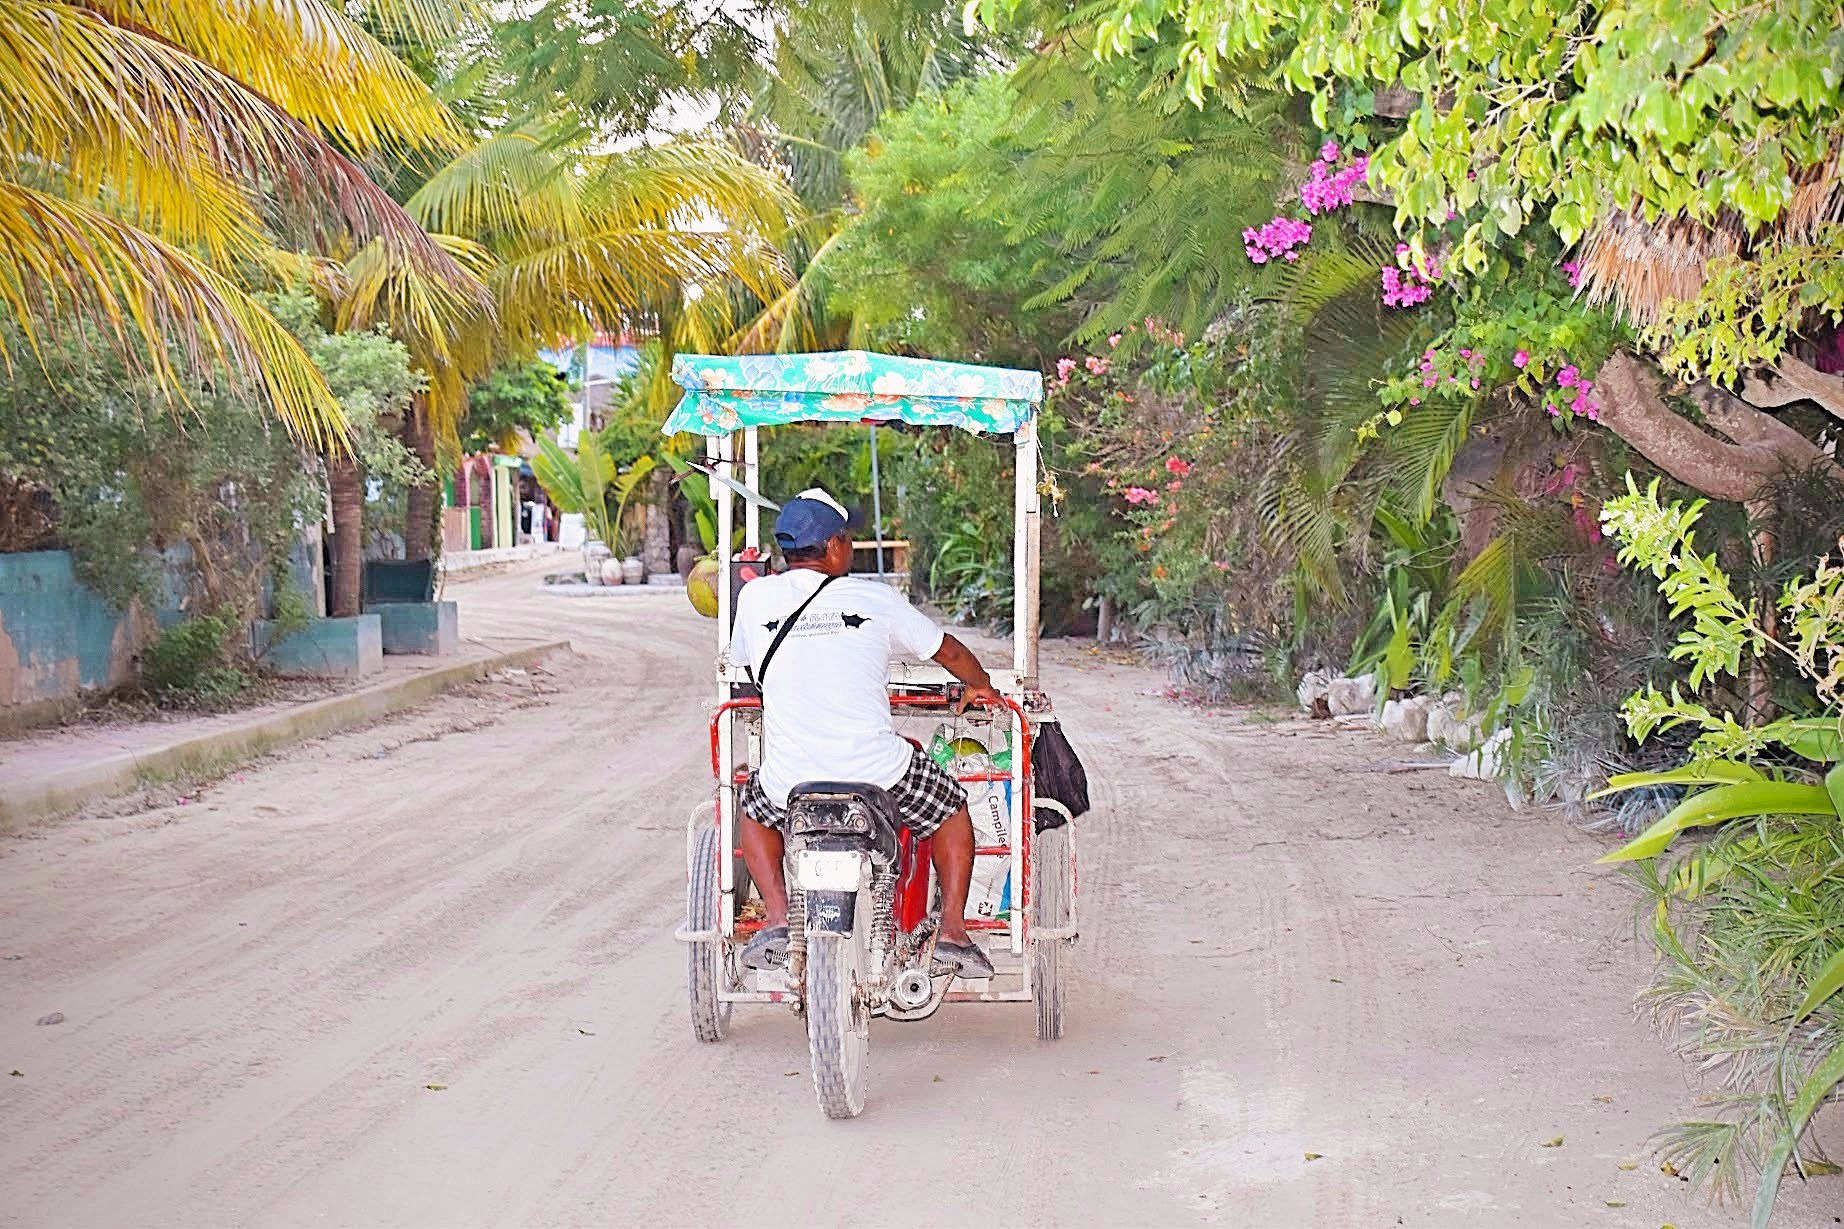 Streets-of-Holbox-Edit